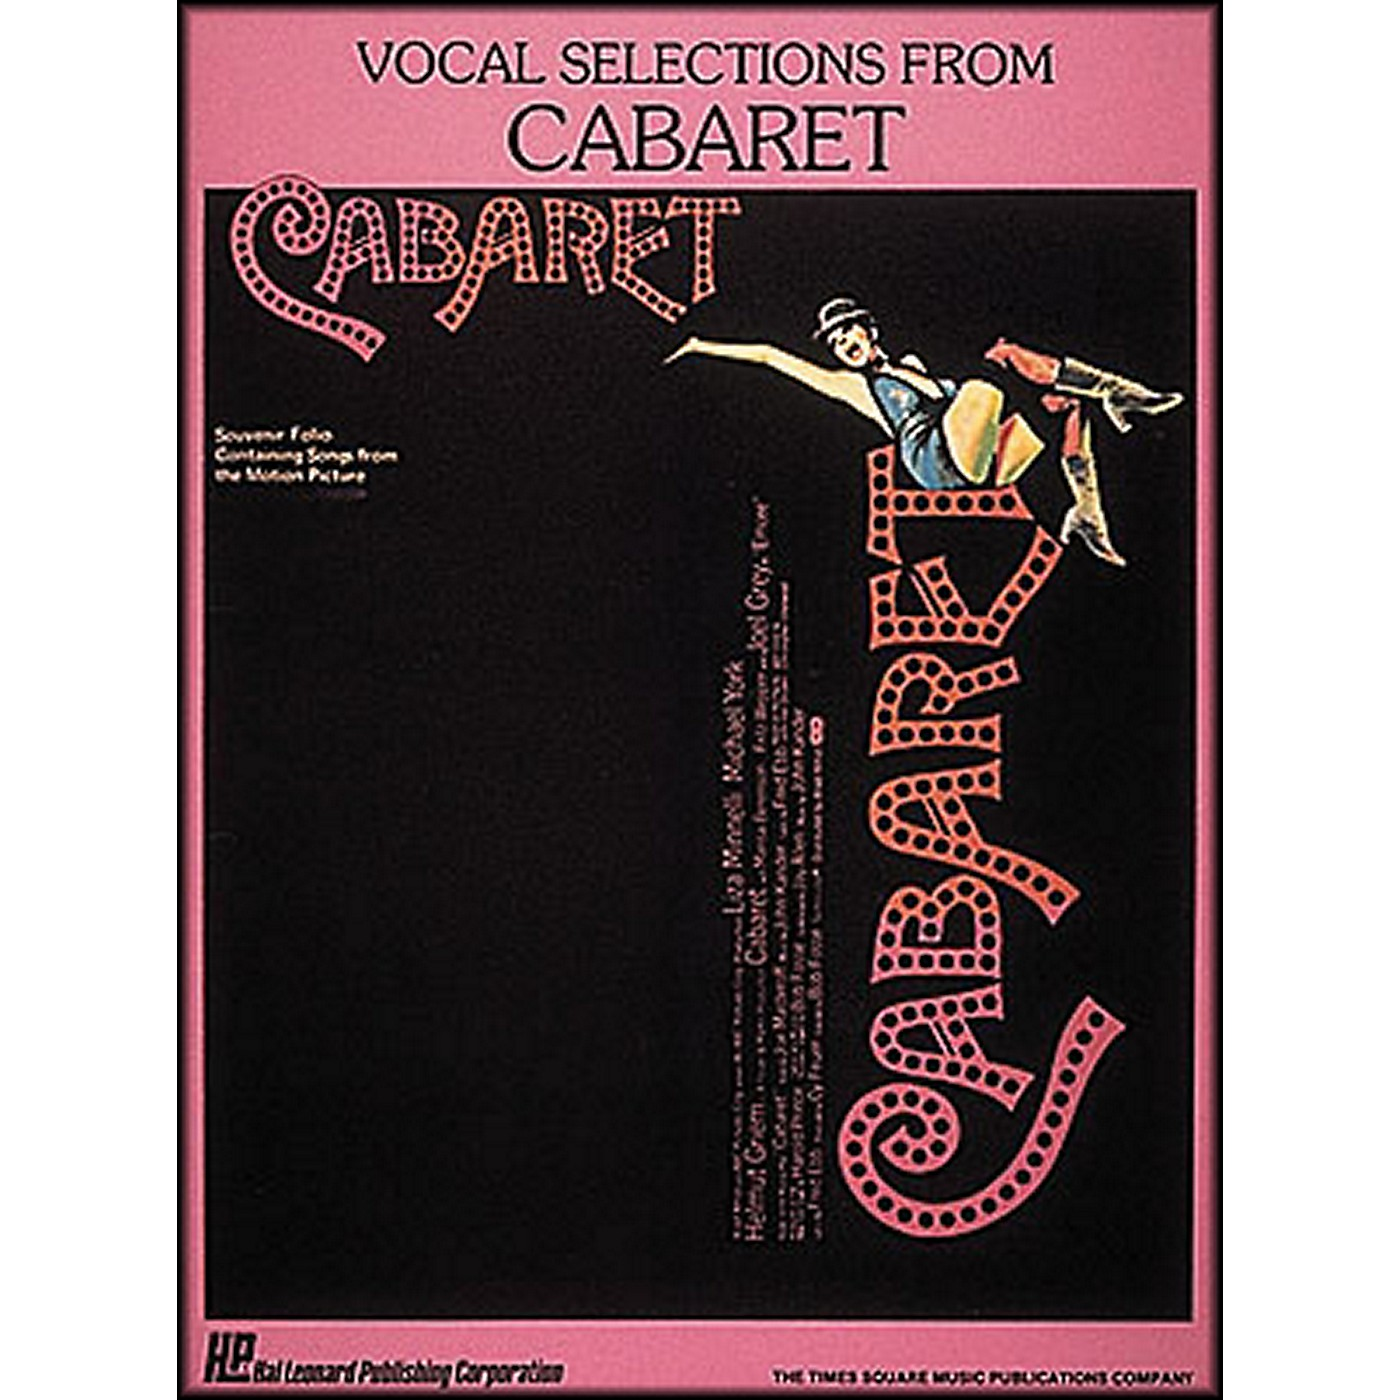 Hal Leonard Vocal Selections From Cabaret Songbook - Piano, Vocal, and Guitar thumbnail